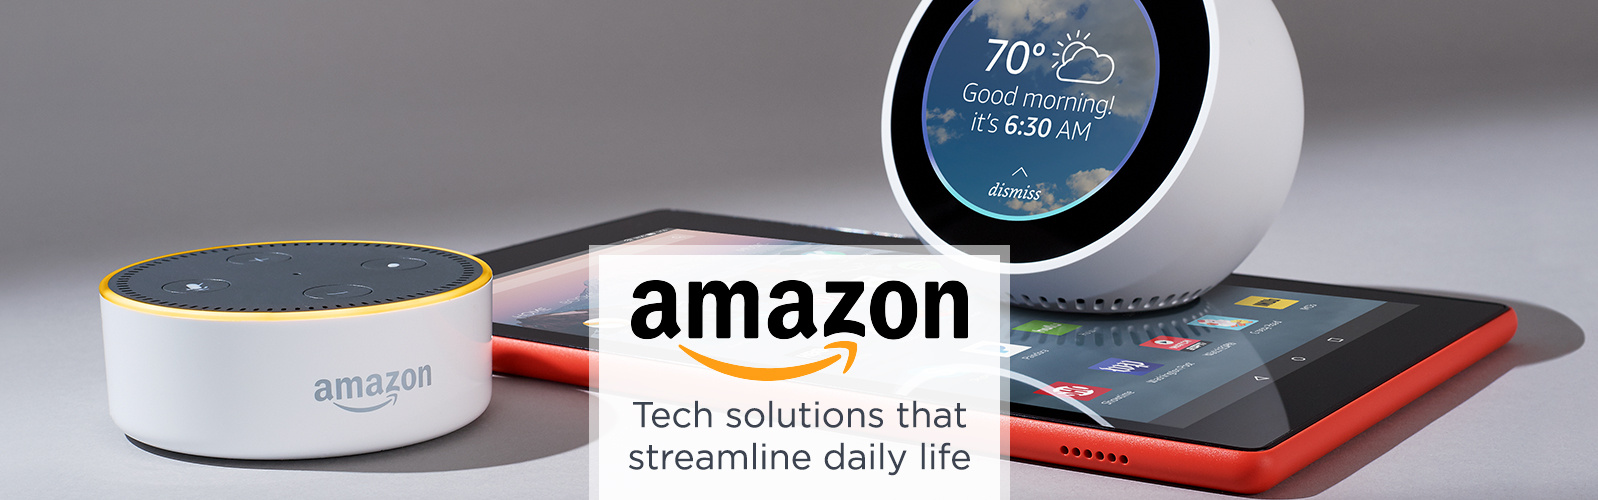 Amazon. Tech solutions that streamline daily life